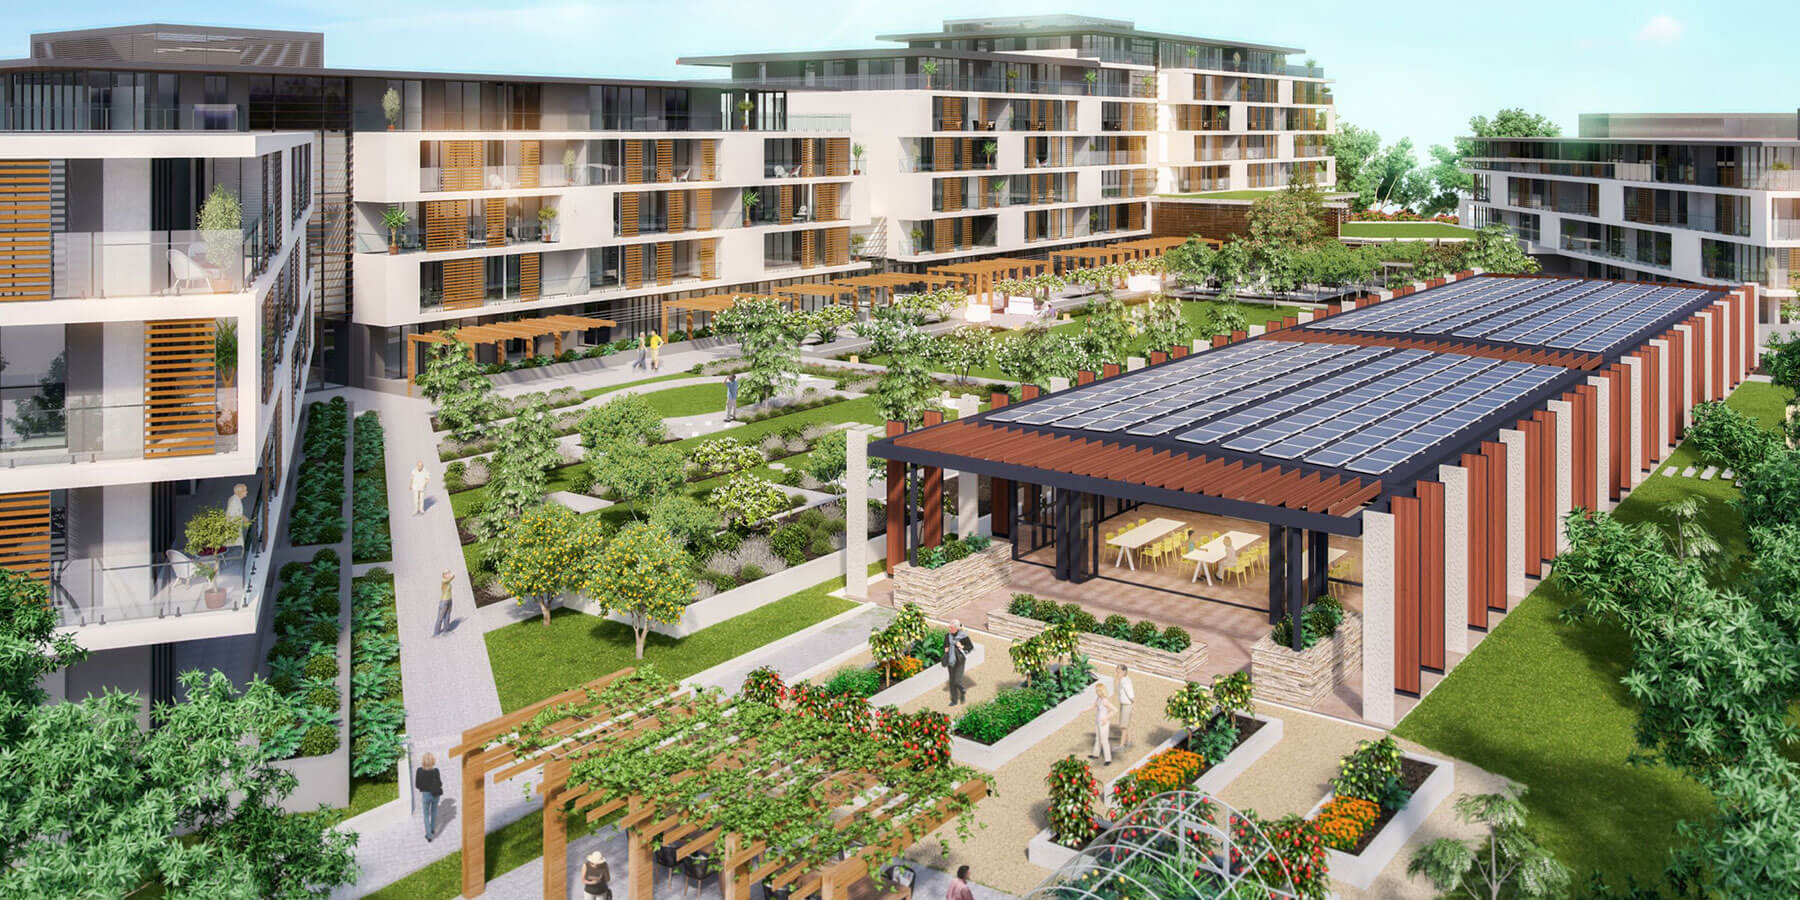 Artist impression (prior to development) of overhead view of St Ives Carine retirement village